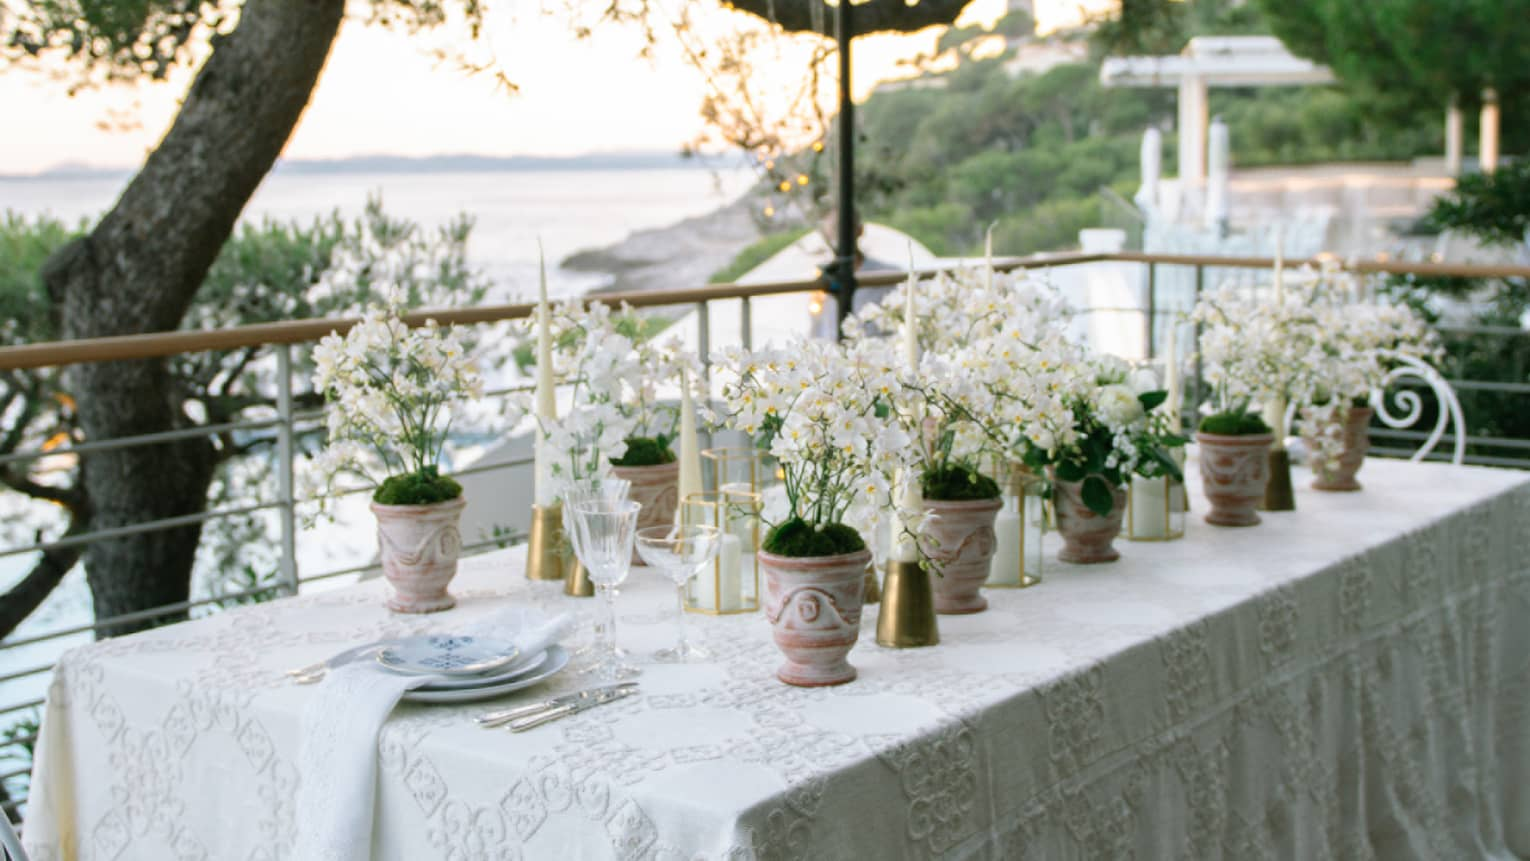 White rectangular dining table lined with potted white flowers, candlesticks one bistro chair on terrace under string lights